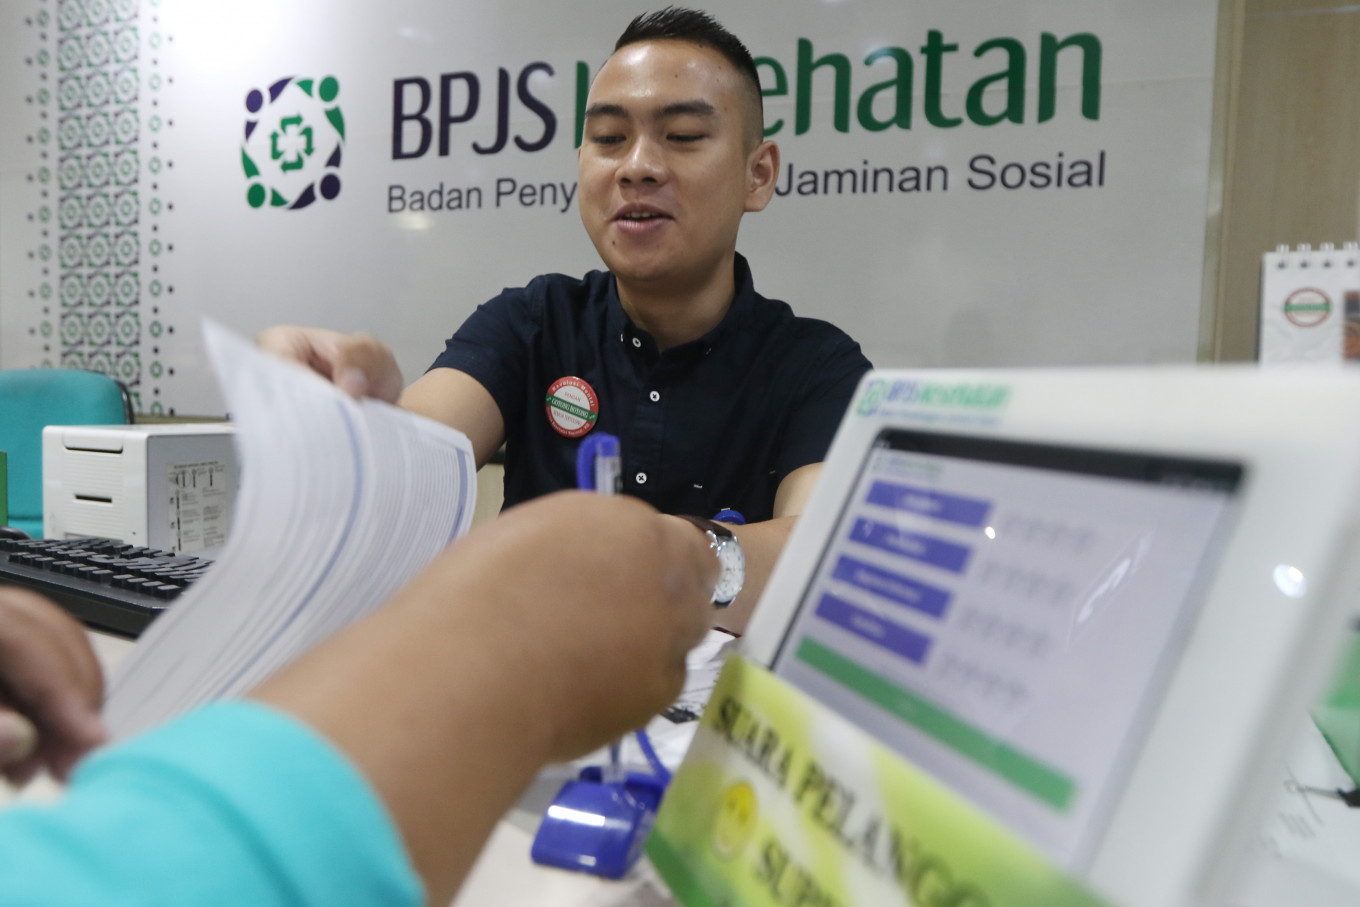 Government defends policy to raise BPJS Kesehatan premiums amid backlash